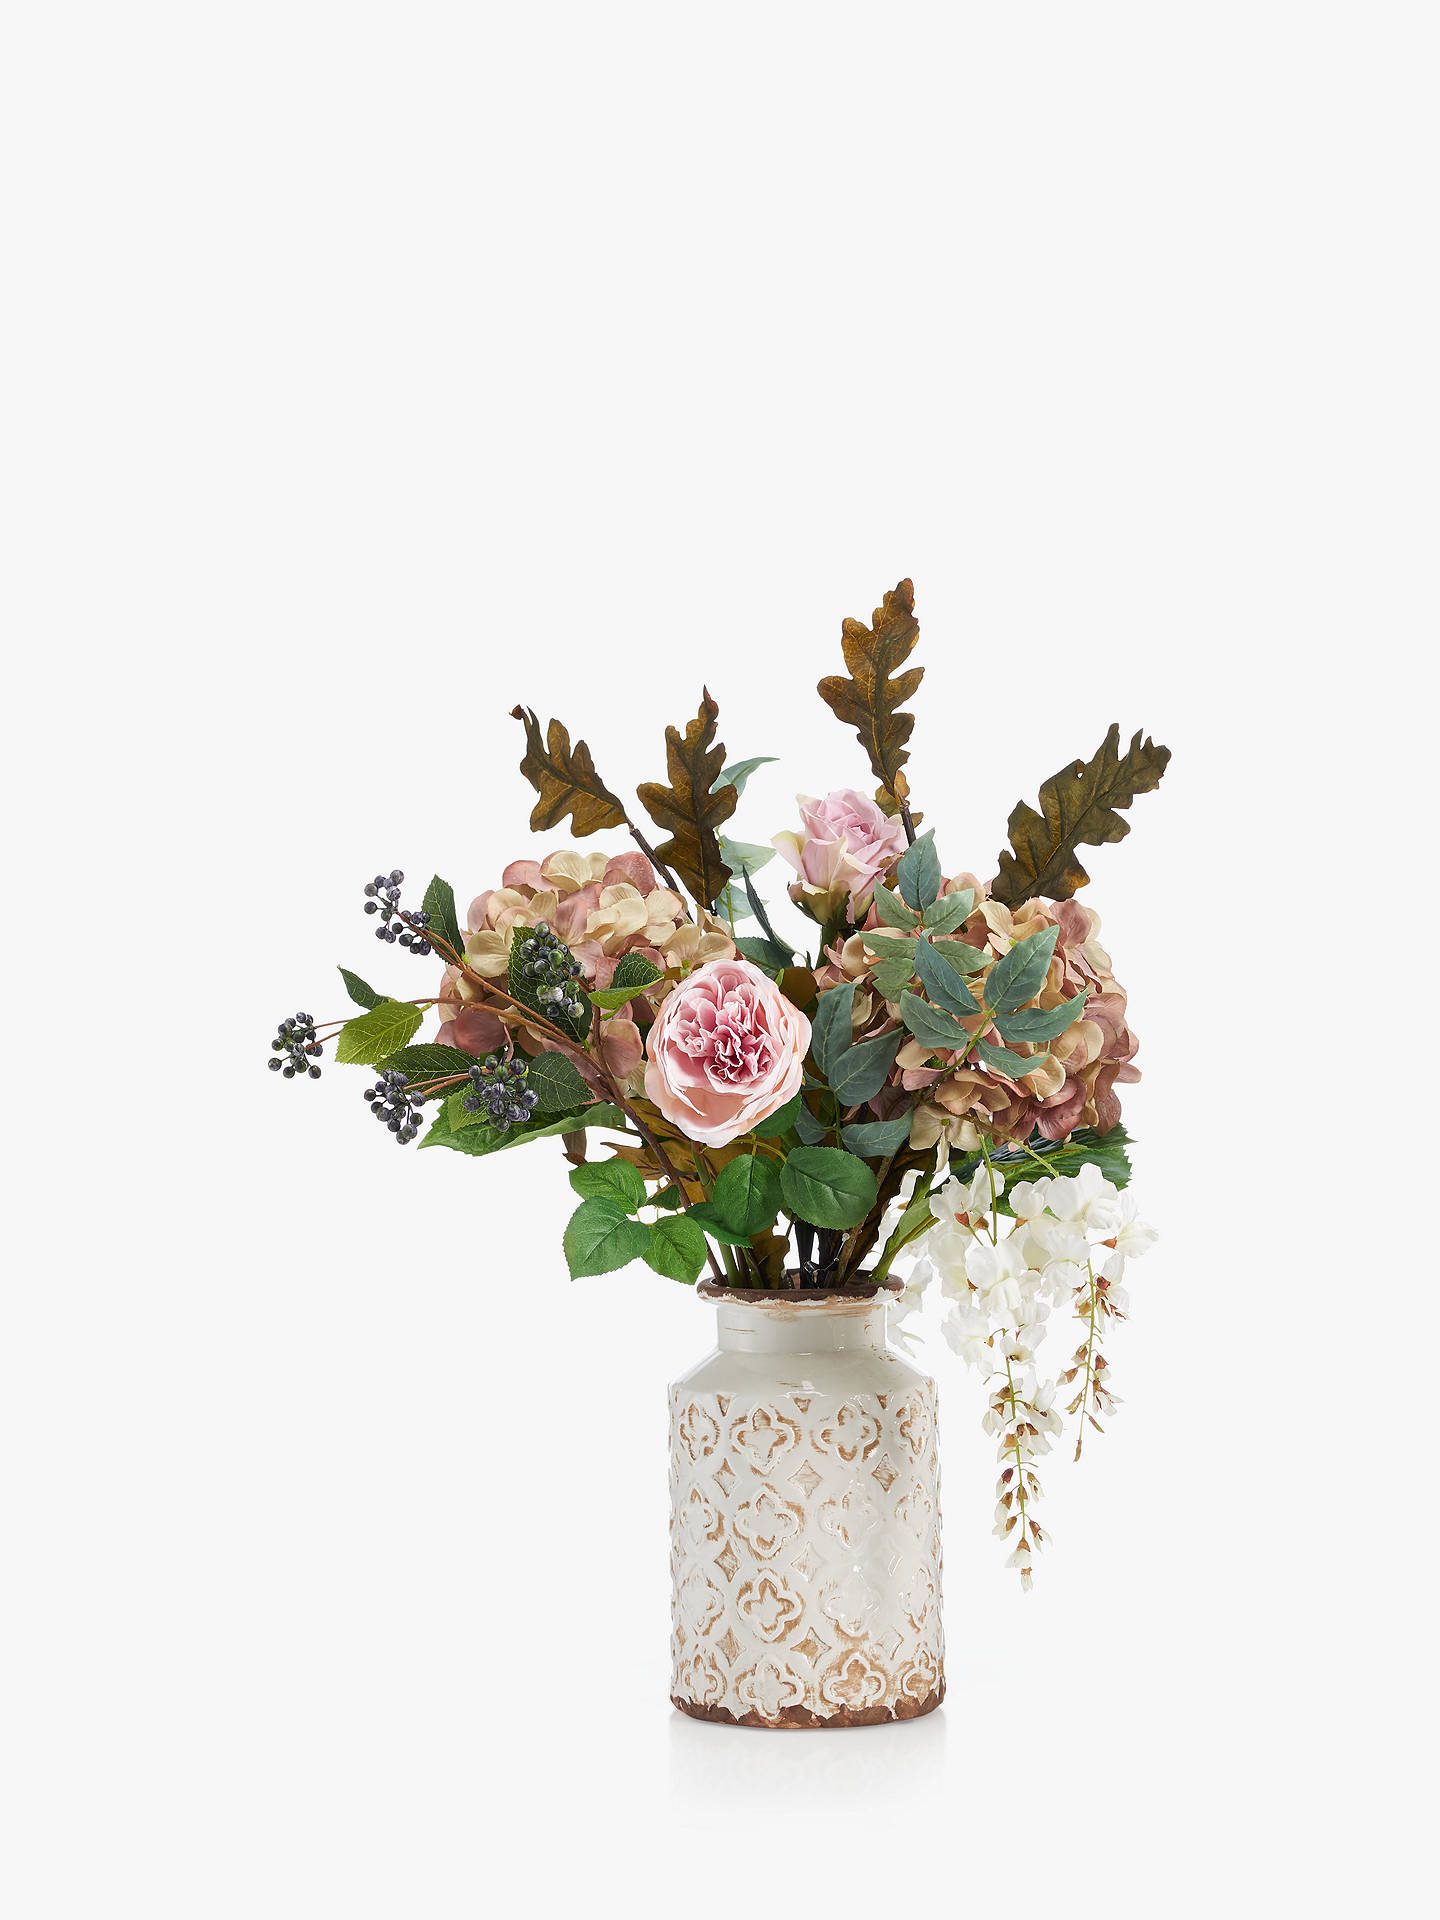 259 & Peony Vintage Autumn Mix Artificial Flowers in Vase